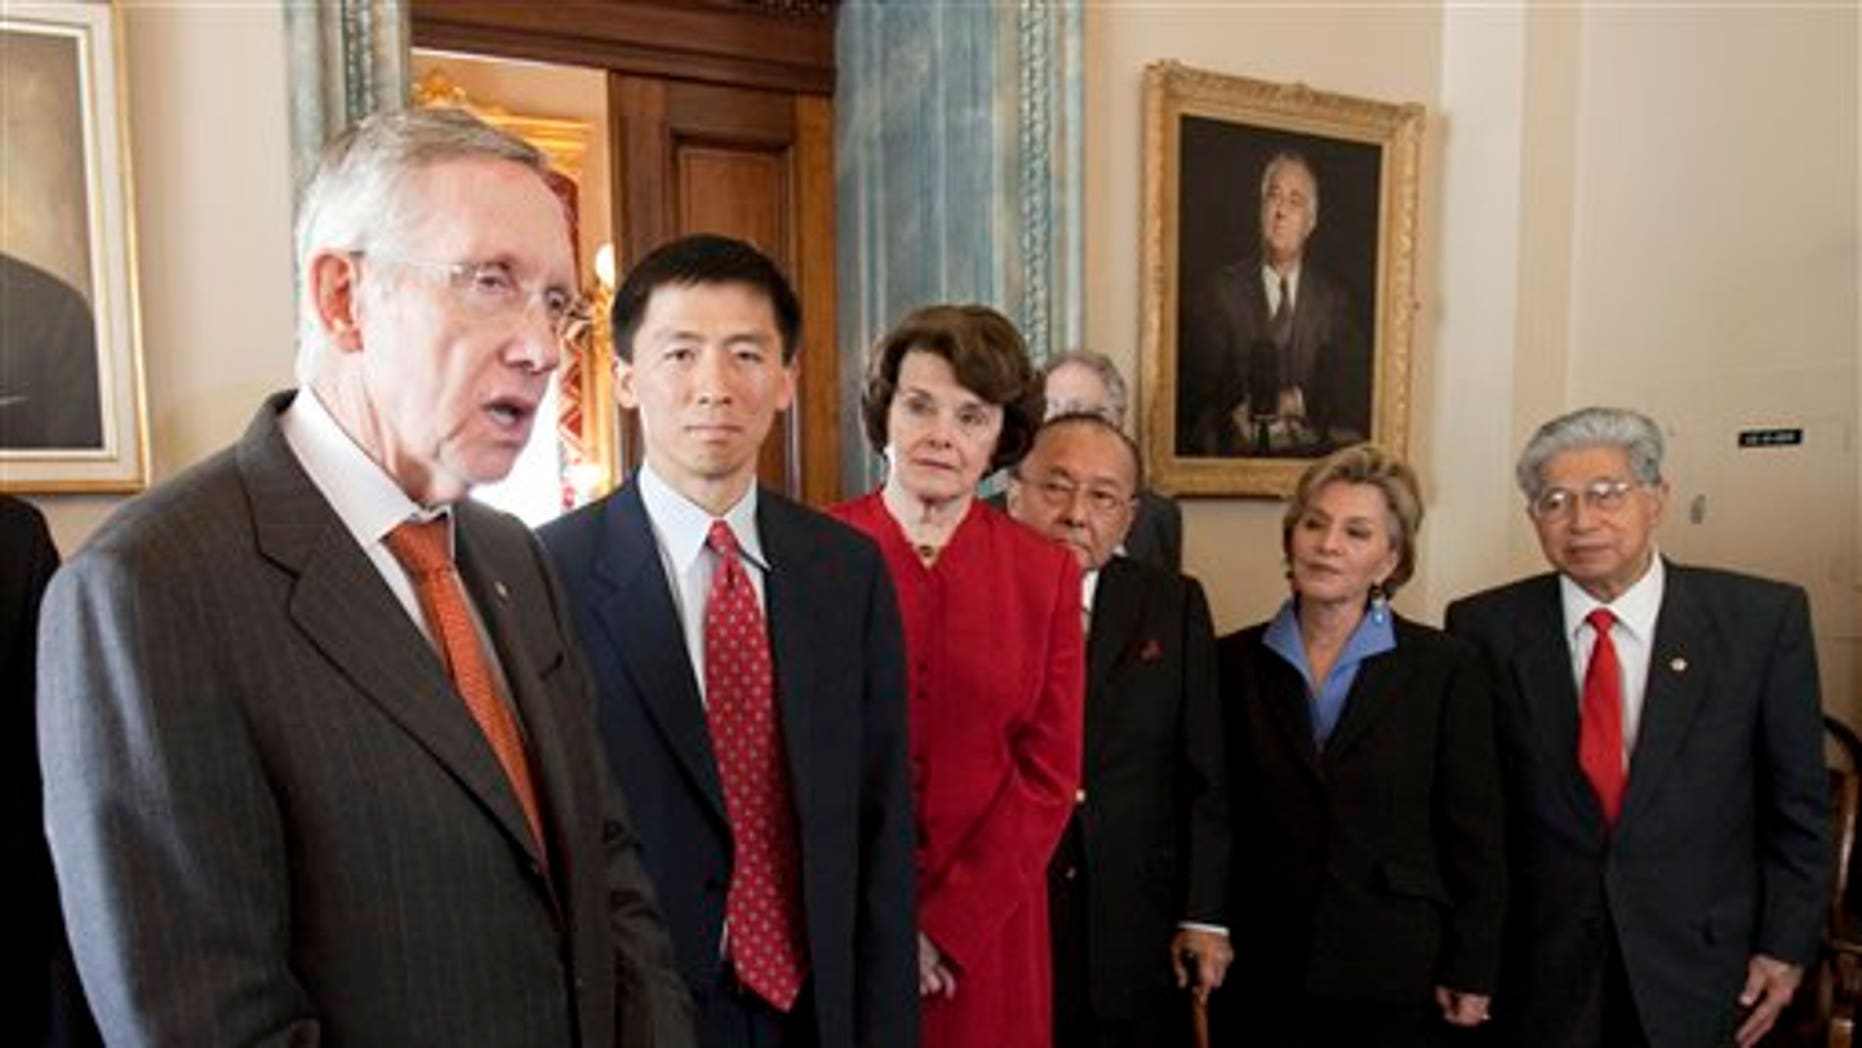 Senate Majority Leader Harry Reid, D-Nev., with judicial nominee Goodwin Liu, and Sens. Diane Feinstein, D-Calif., Daniel Inouye, D-Hi., Barbara Boxer, D-Calif., and Daniel Akaka, D-Hi. where Reid talked, Wednesday, May 18, 2011 in Washington. (AP)